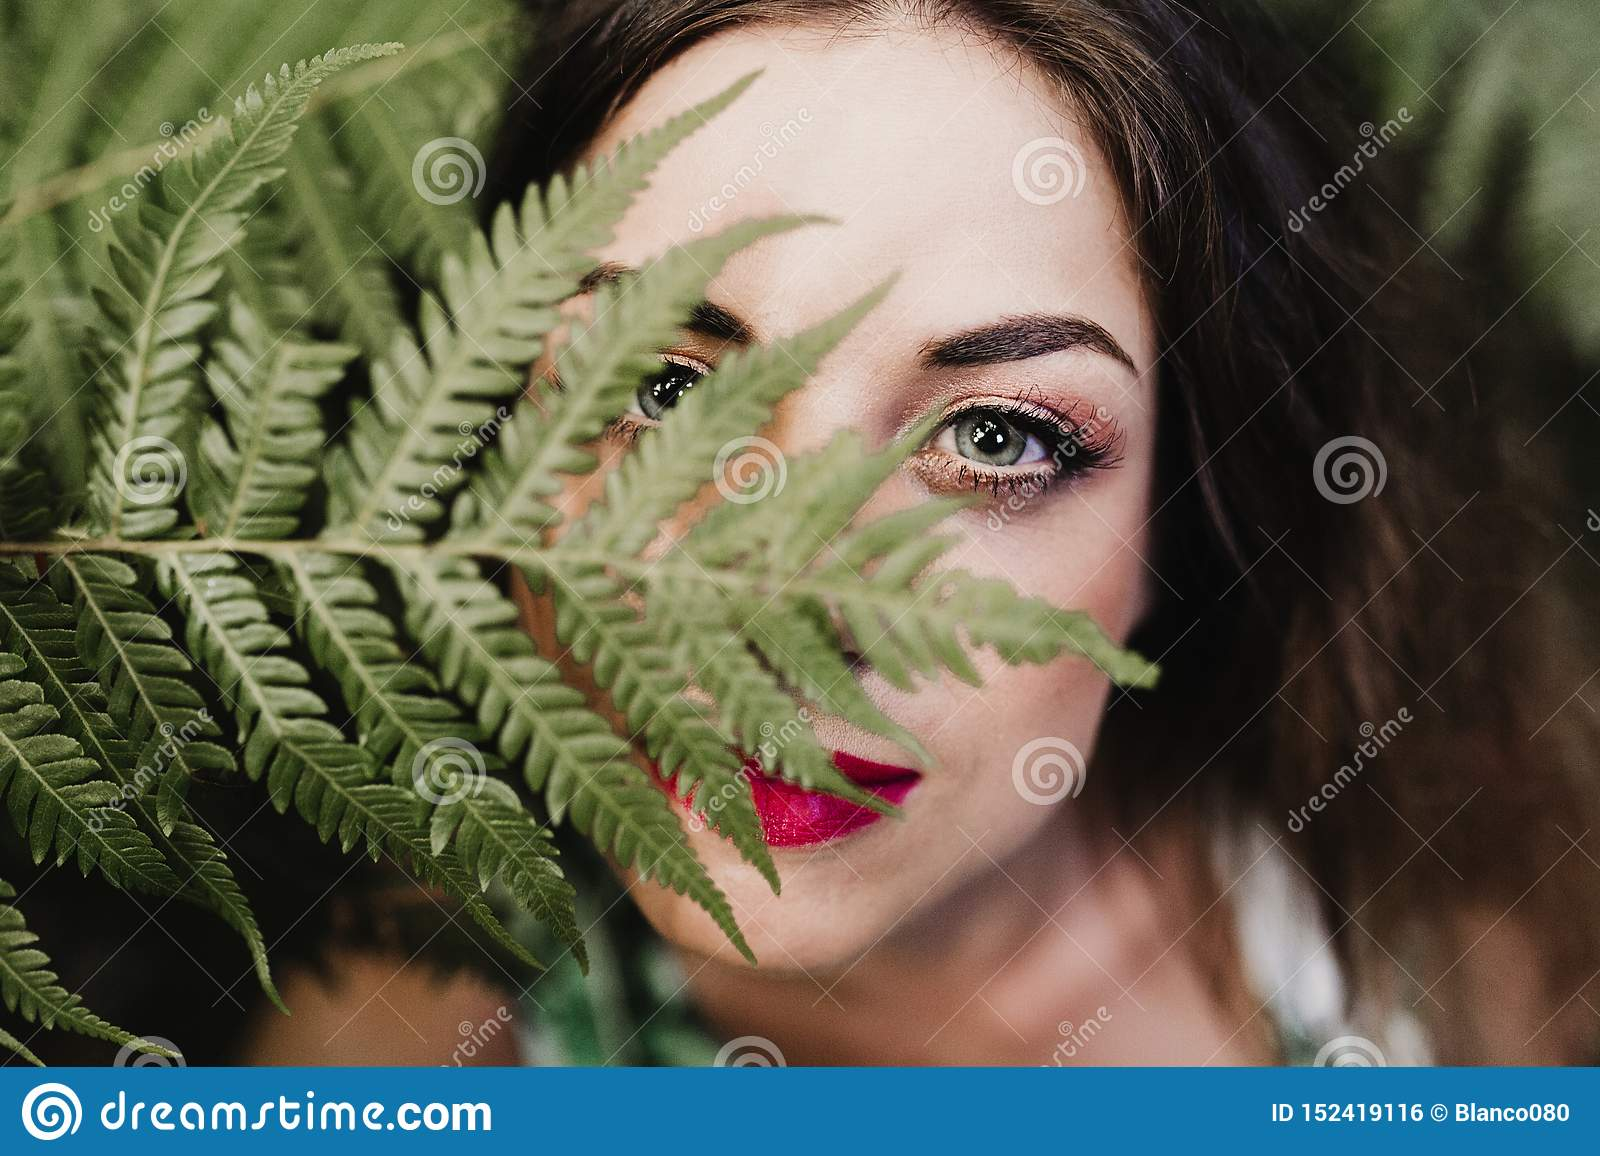 close up portrait of a young beautiful woman among green fern leaves looking at the camera. Beauty concept